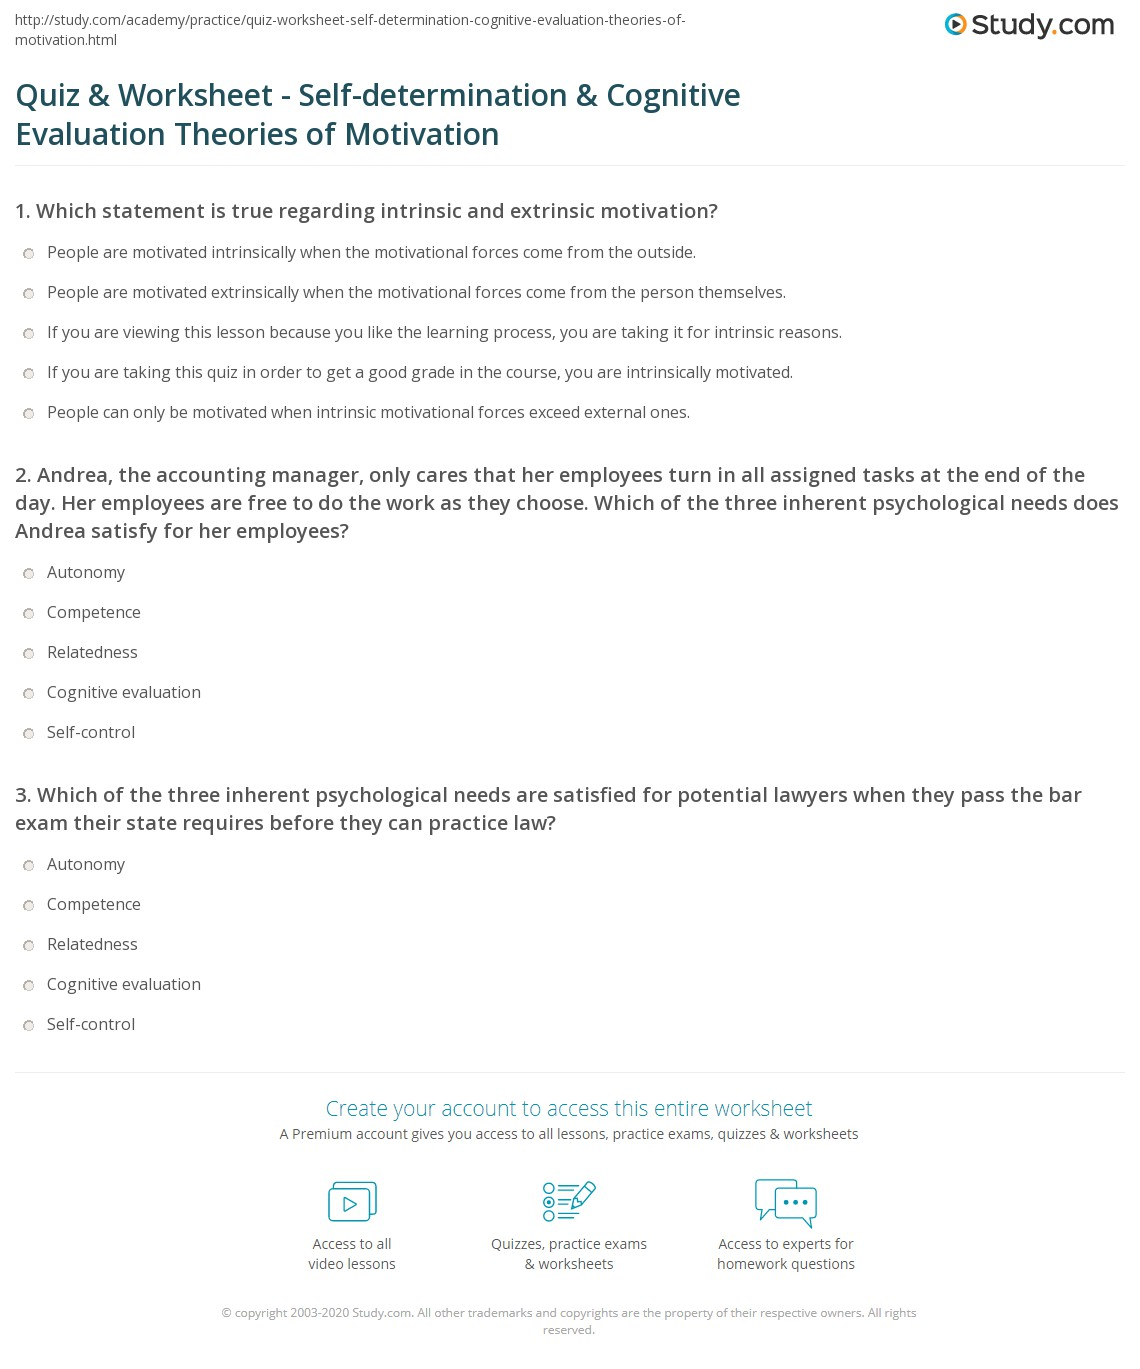 worksheet Motivation Worksheets quiz worksheet self determination cognitive evaluation 1 andrea the accounting manager only cares that her employees turn in all assigned tasks at end of day are f